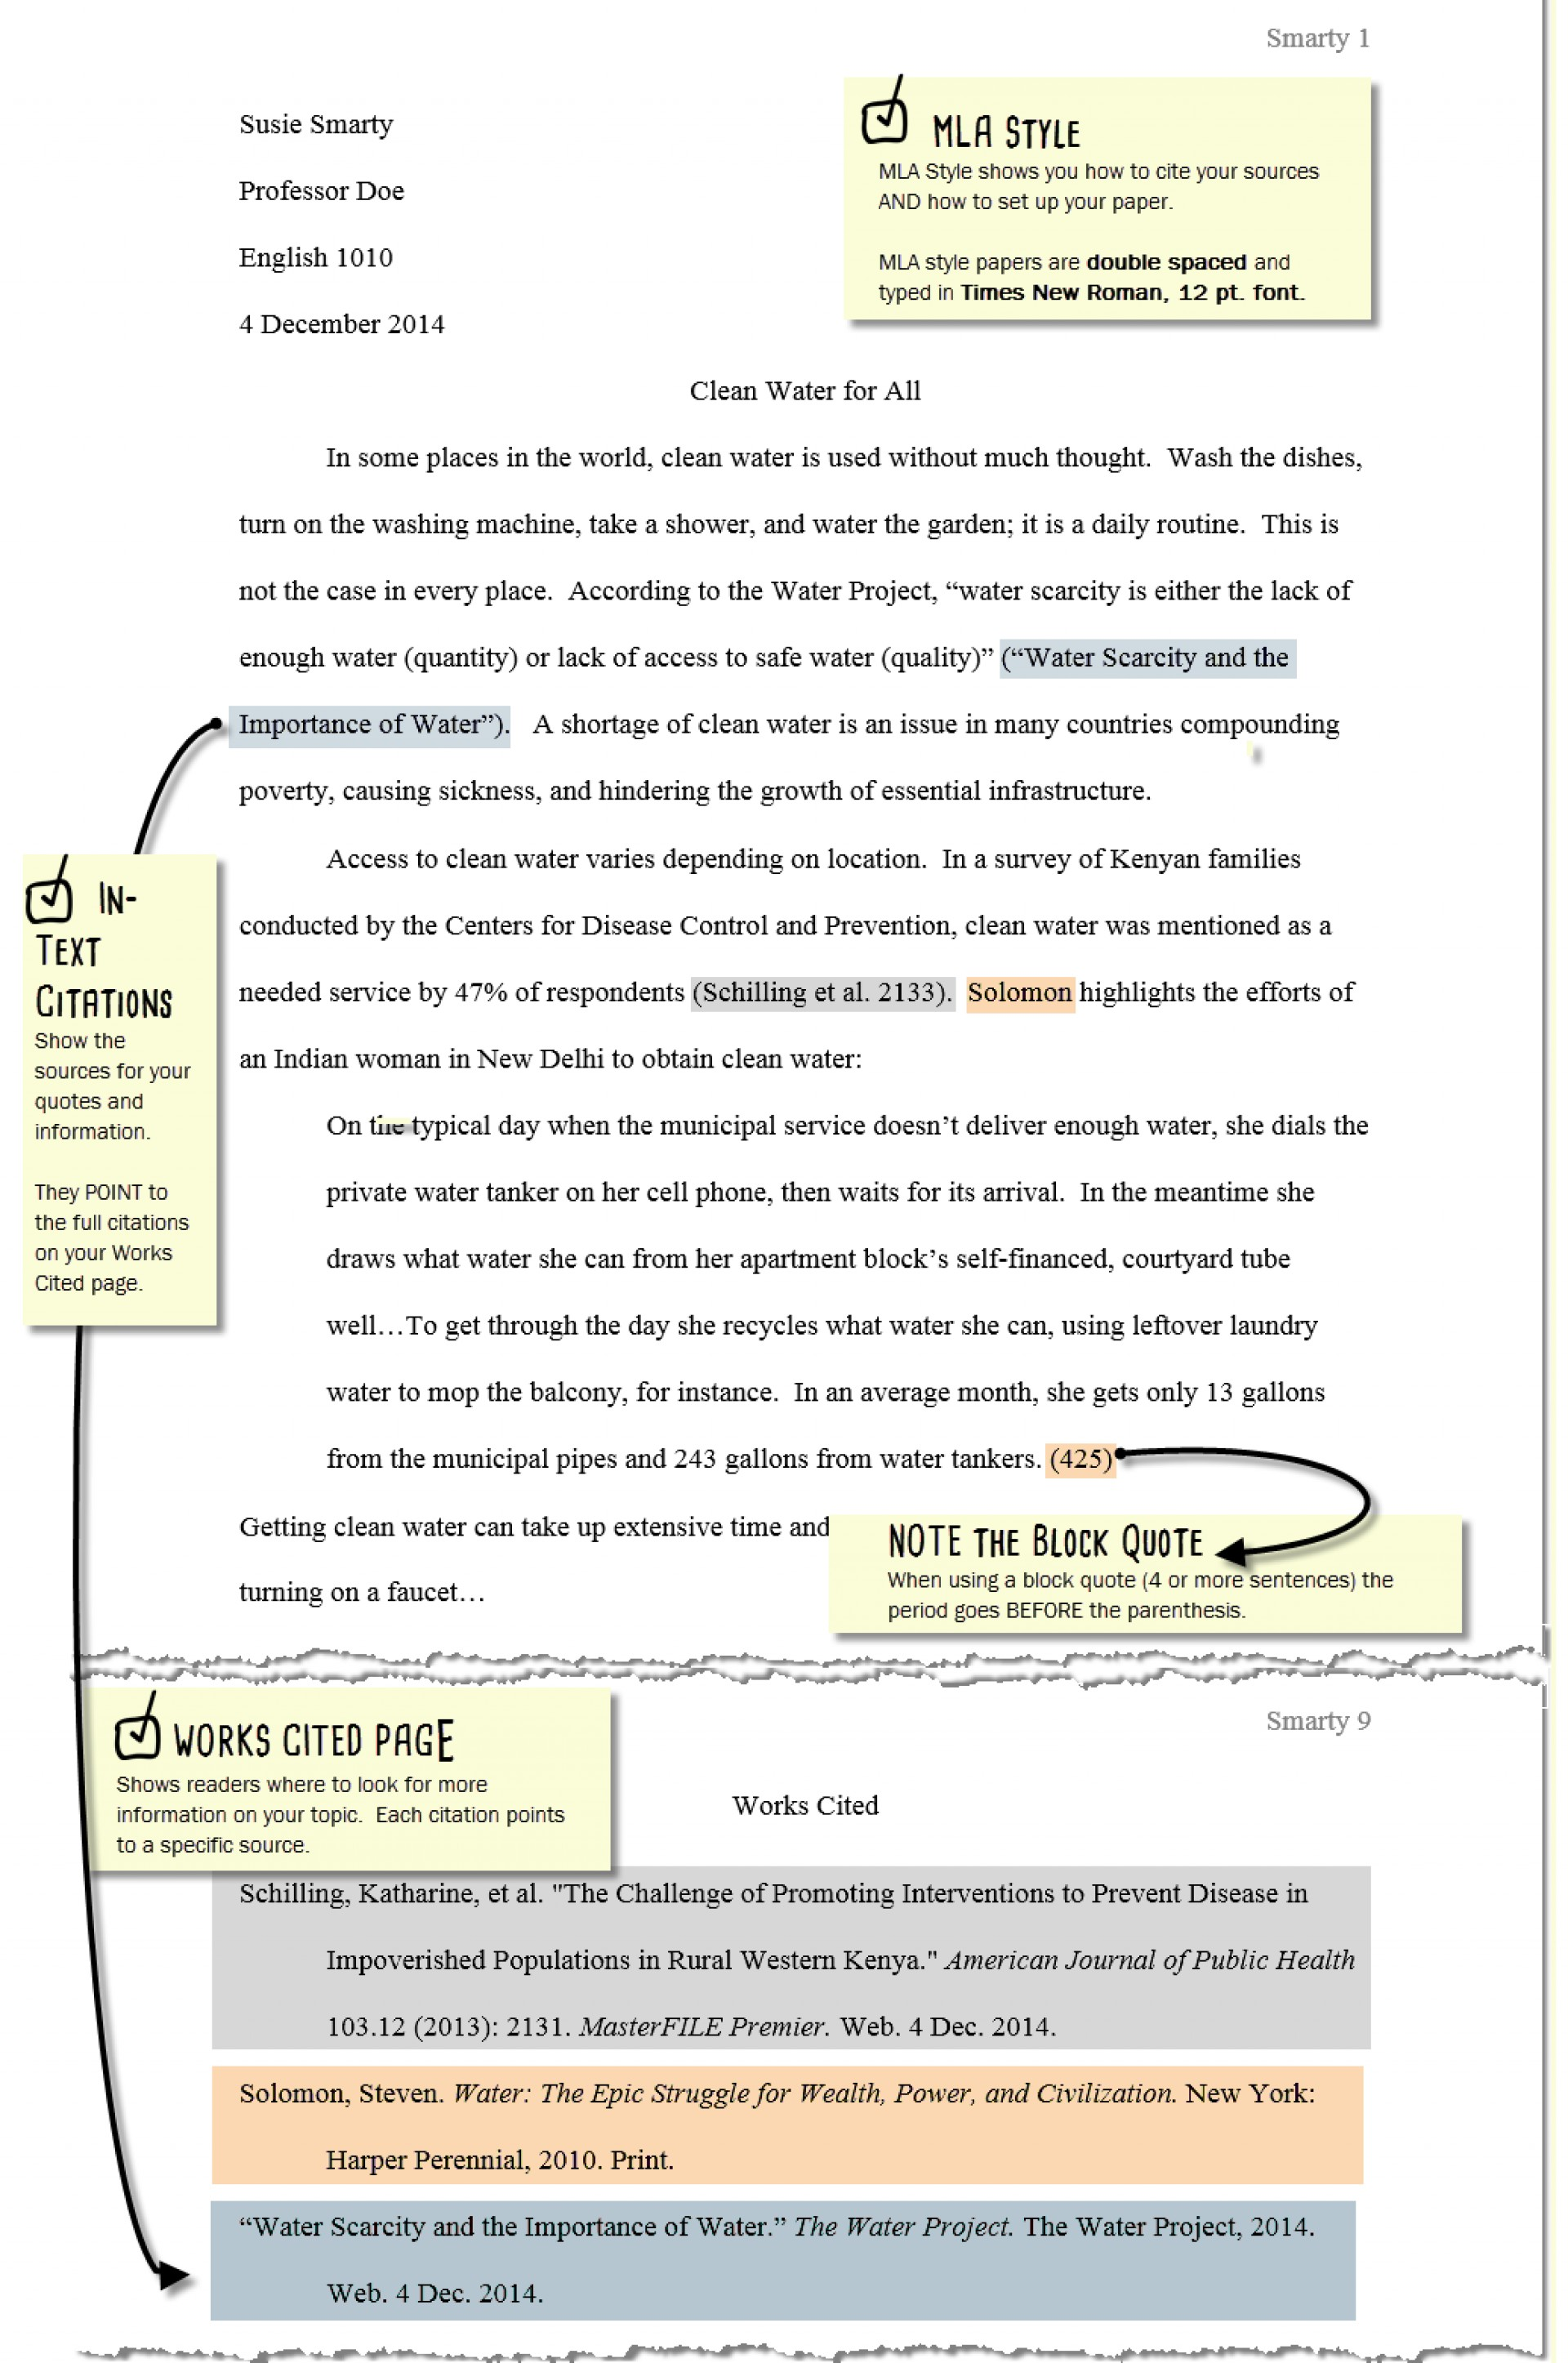 006 How To Cite In An Essay Mla Example Sample Paper Updated Blues Sw Archaicawful Sources Websites Movies A 1920